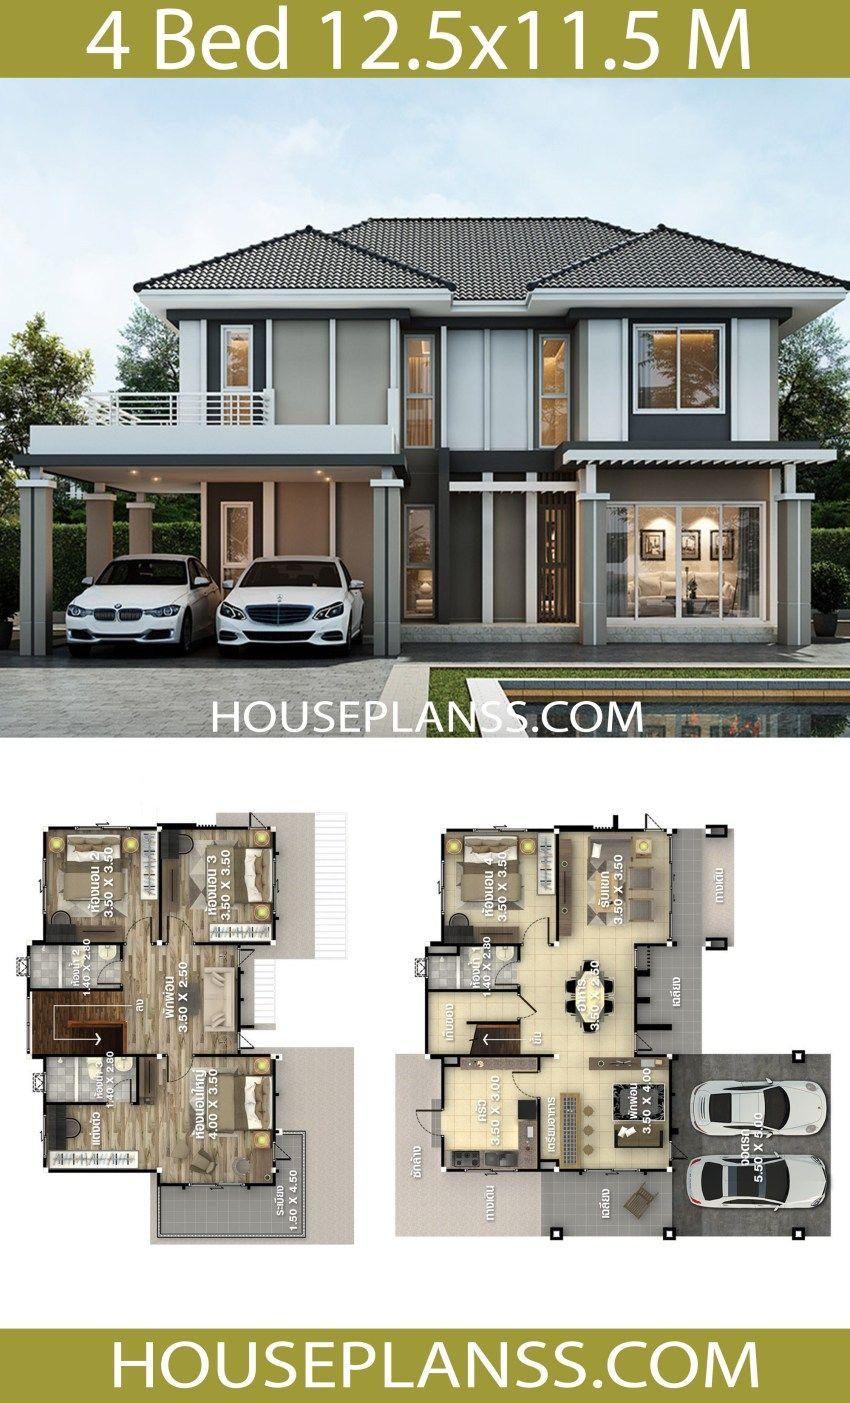 House Plans Idea 12 5x11 5 With 4 Bedrooms Architectural House Plans 2 Storey House Design House Layout Plans